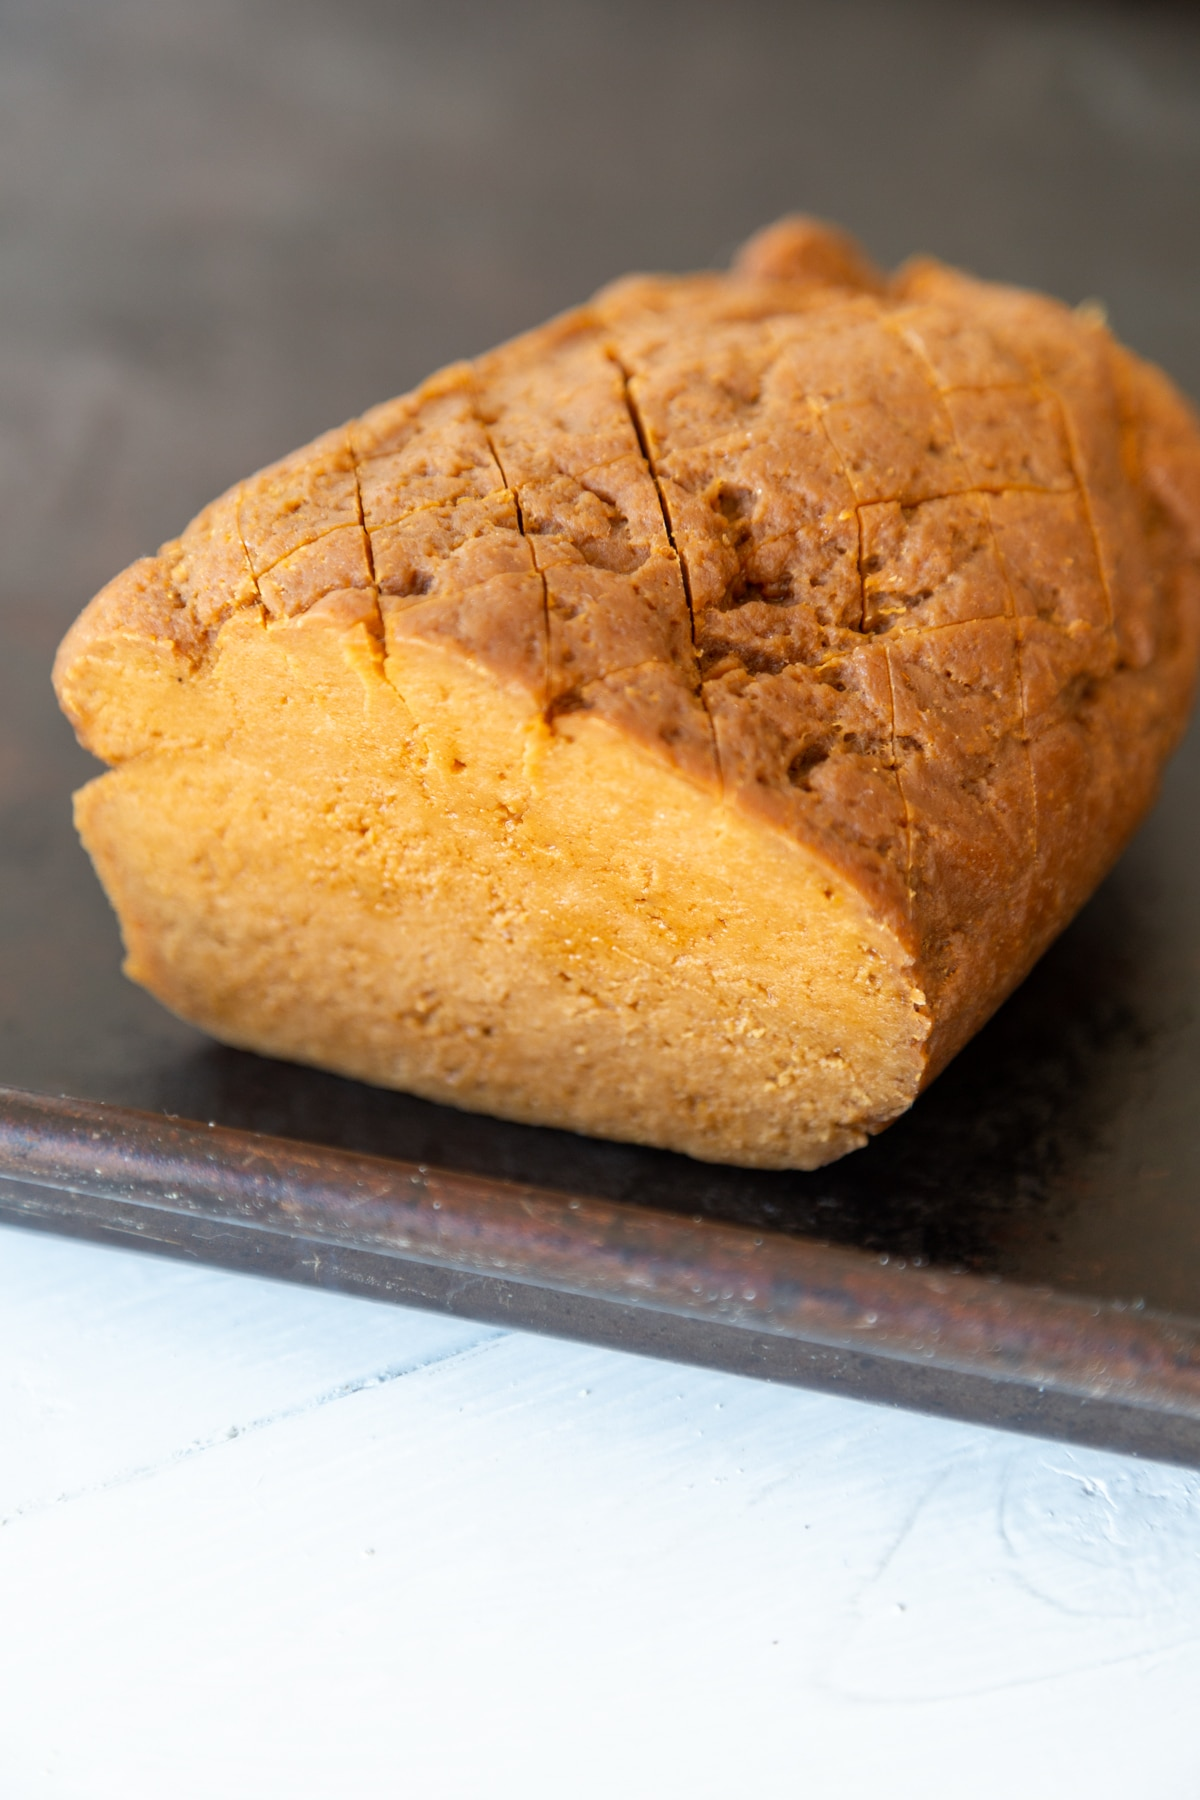 A seitan ham roast with a slice cut from the end of it.